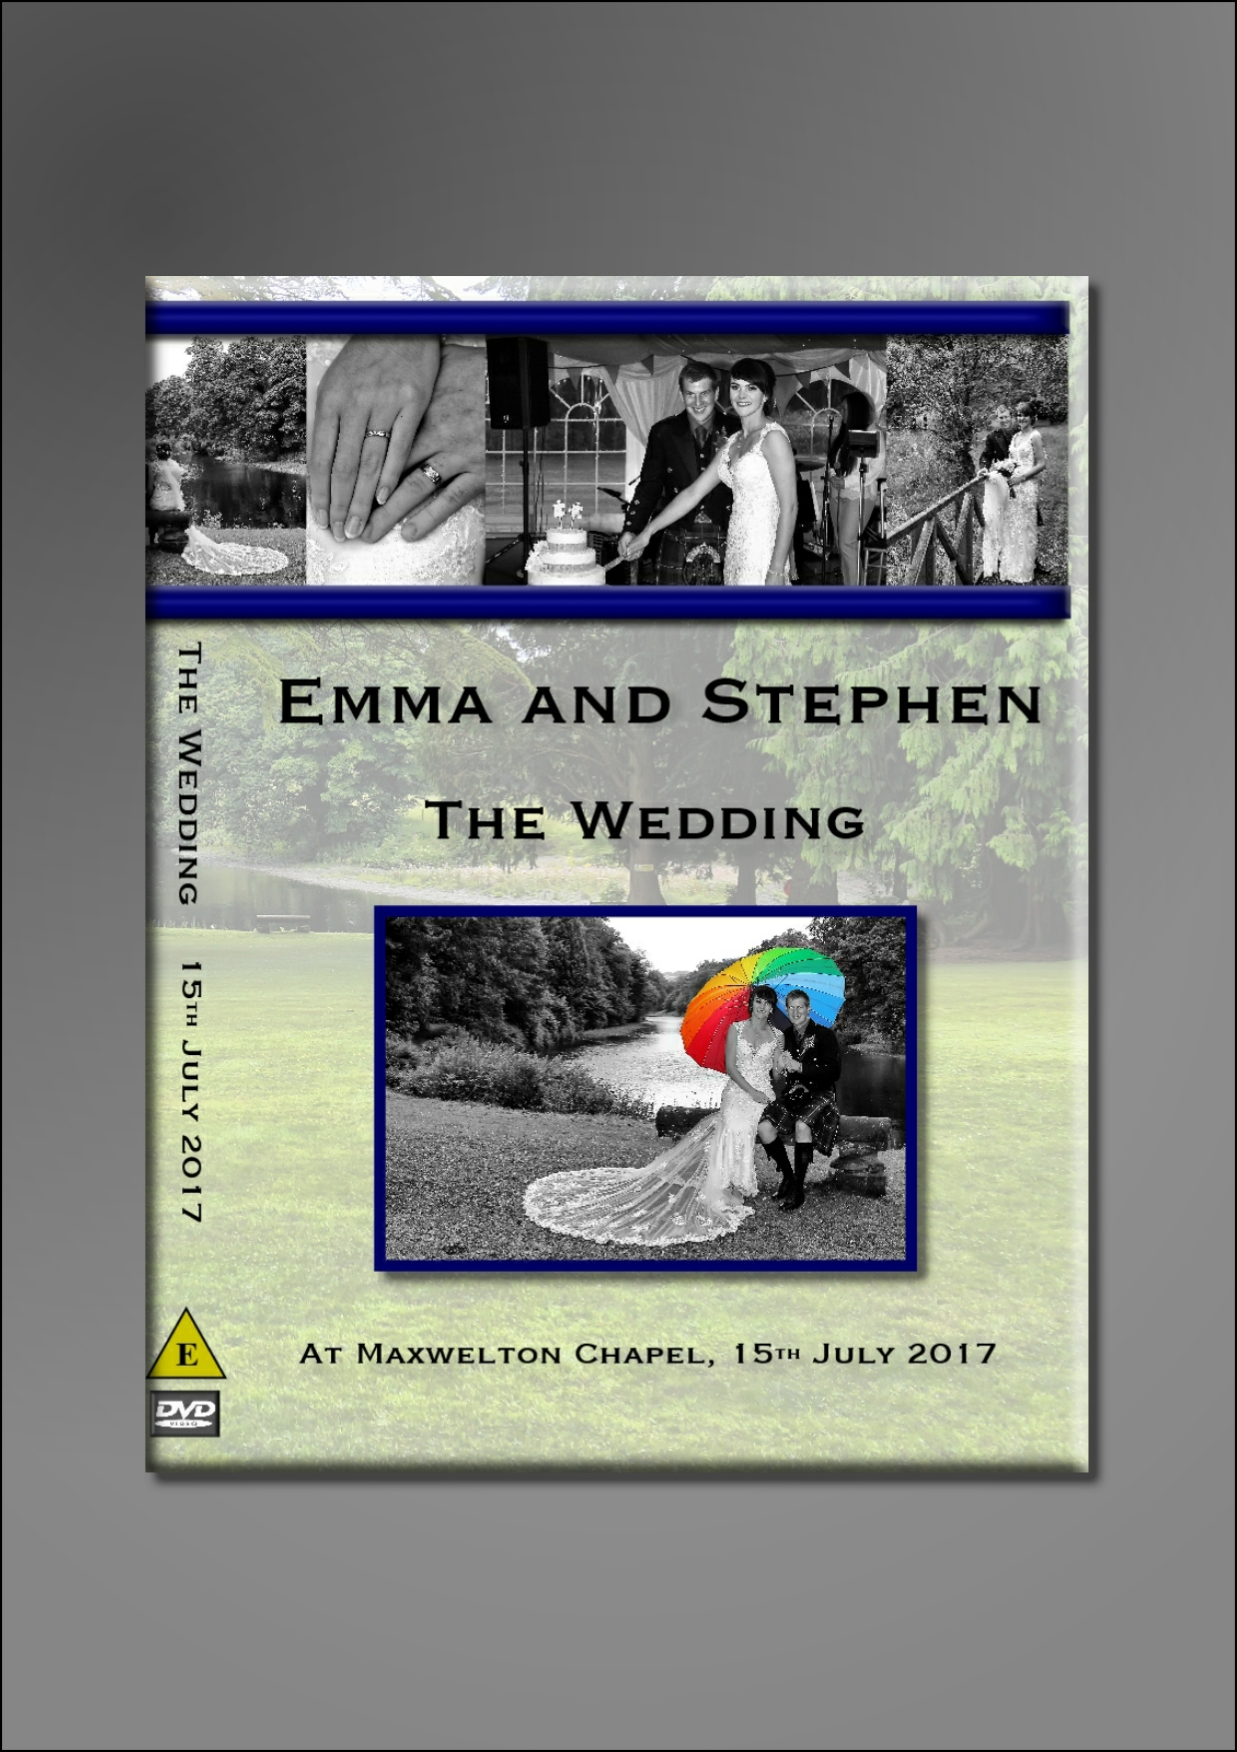 Emma and Stephen's DVD